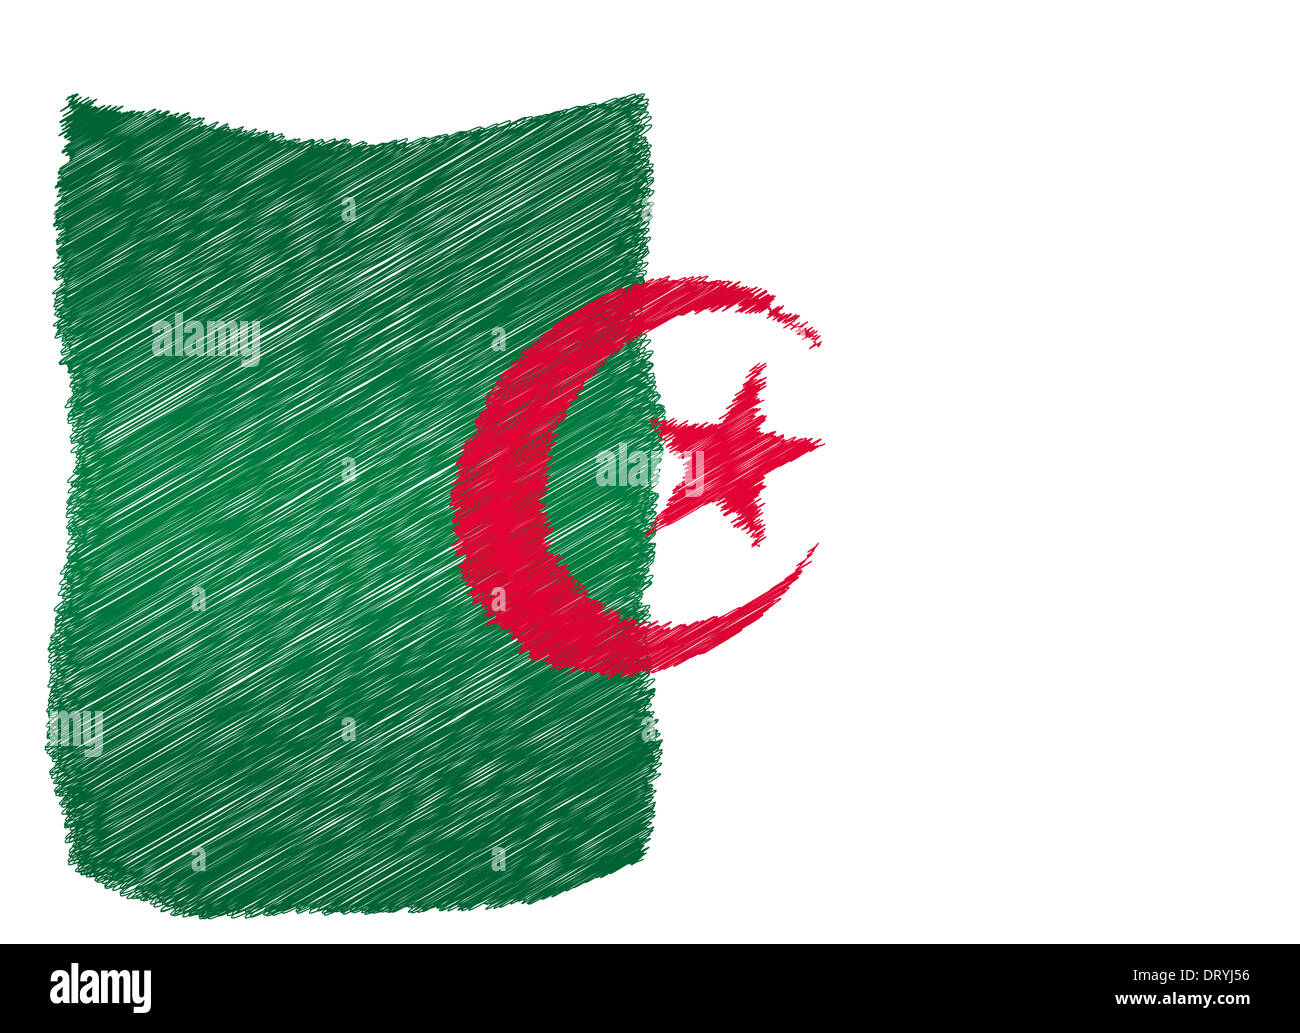 Sketch - Algeria - Stock Image